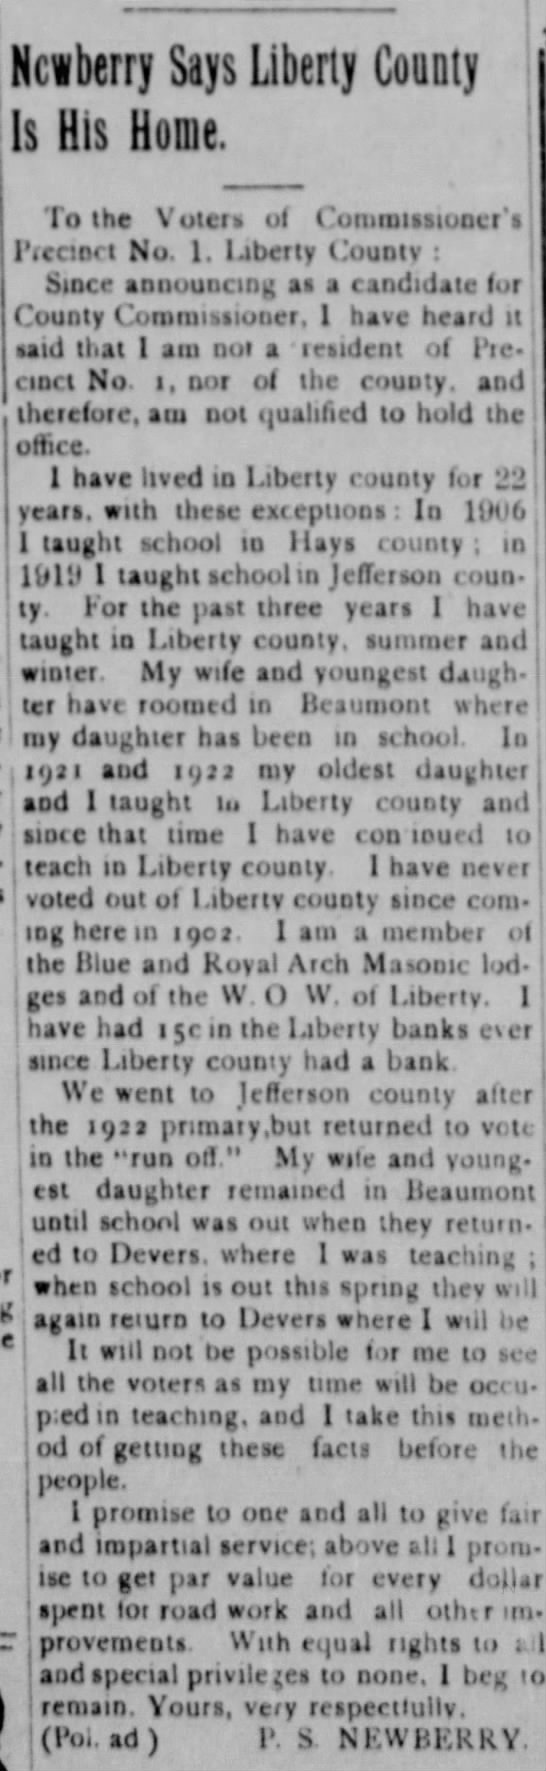 P.S. Newberry Political Ad - 1924 - j Newberry Says Liberty County Is His Home. To...